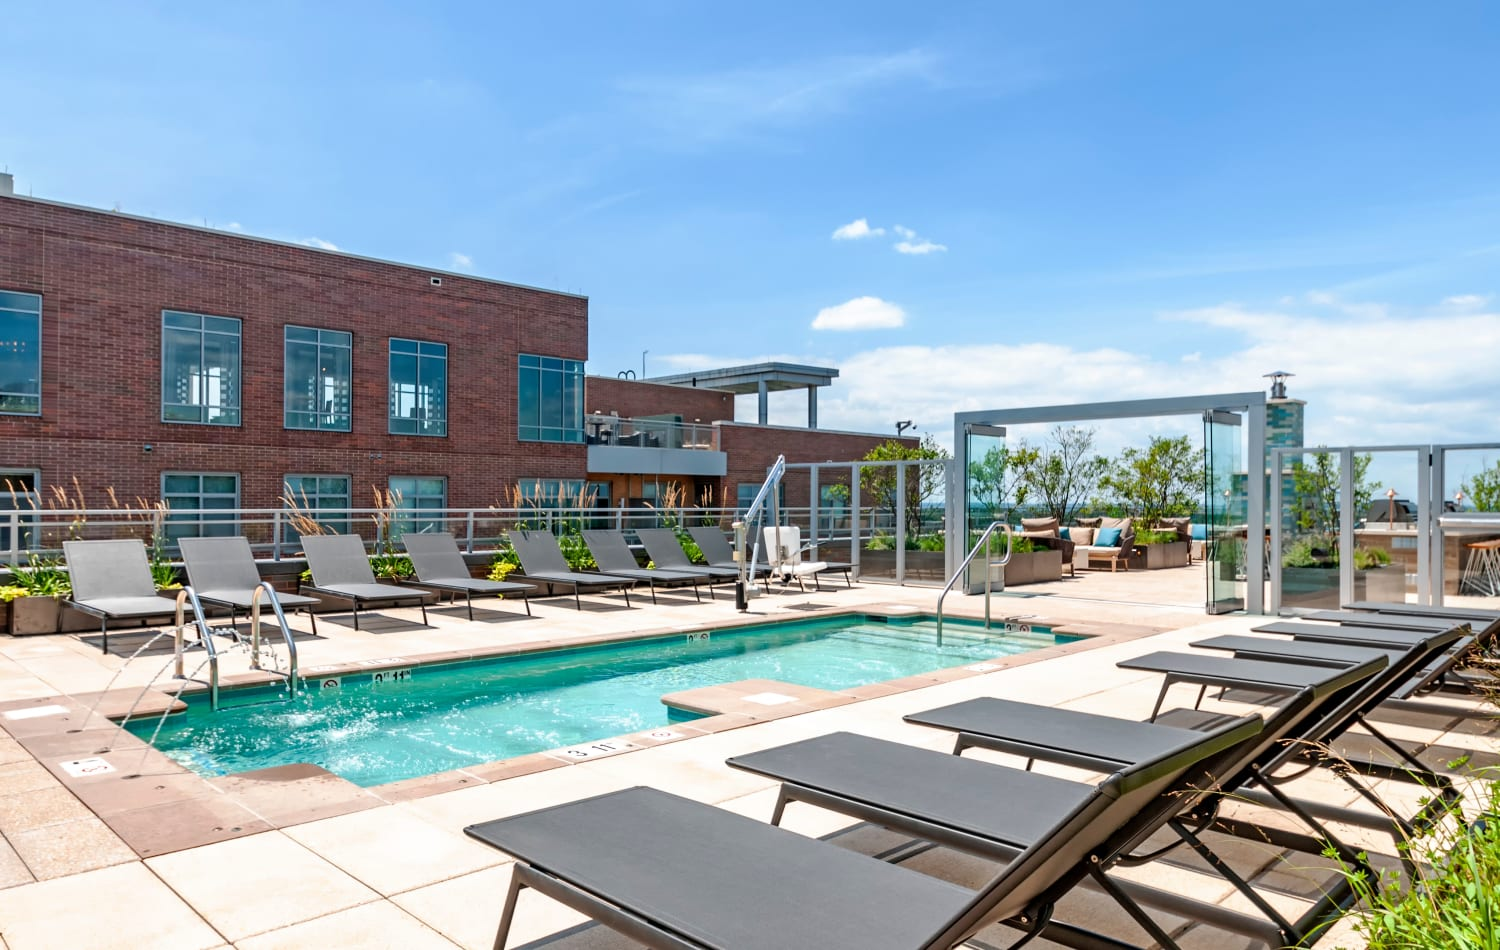 Rooftop deck and swimming pool at Gallery Bethesda II in Bethesda, MD